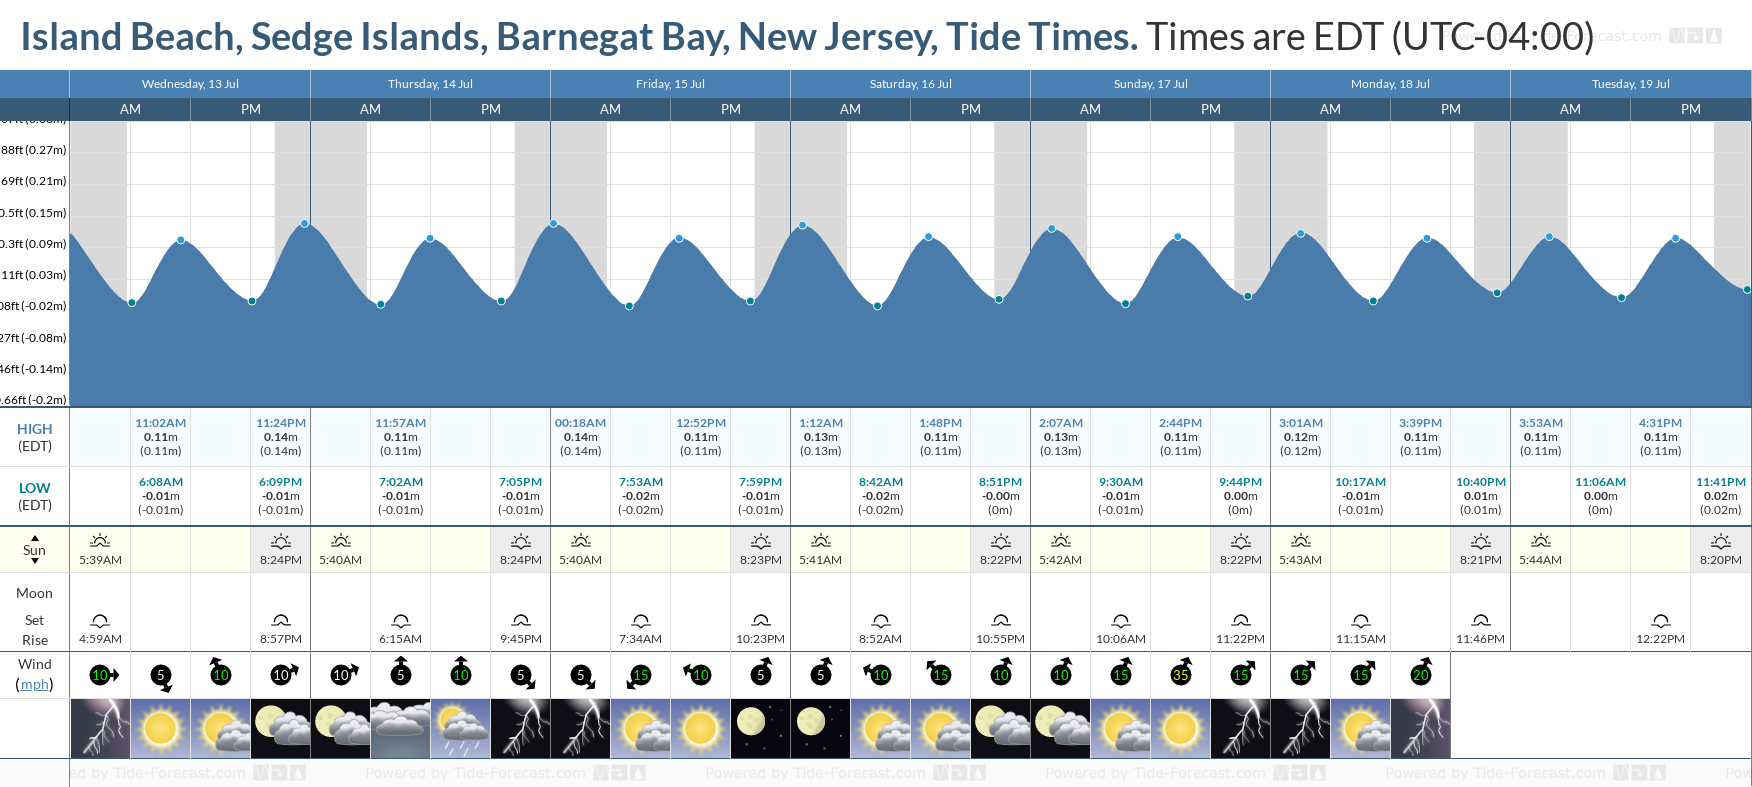 Island Beach, Sedge Islands, Barnegat Bay, New Jersey Tide Chart including high and low tide tide times for the next 7 days